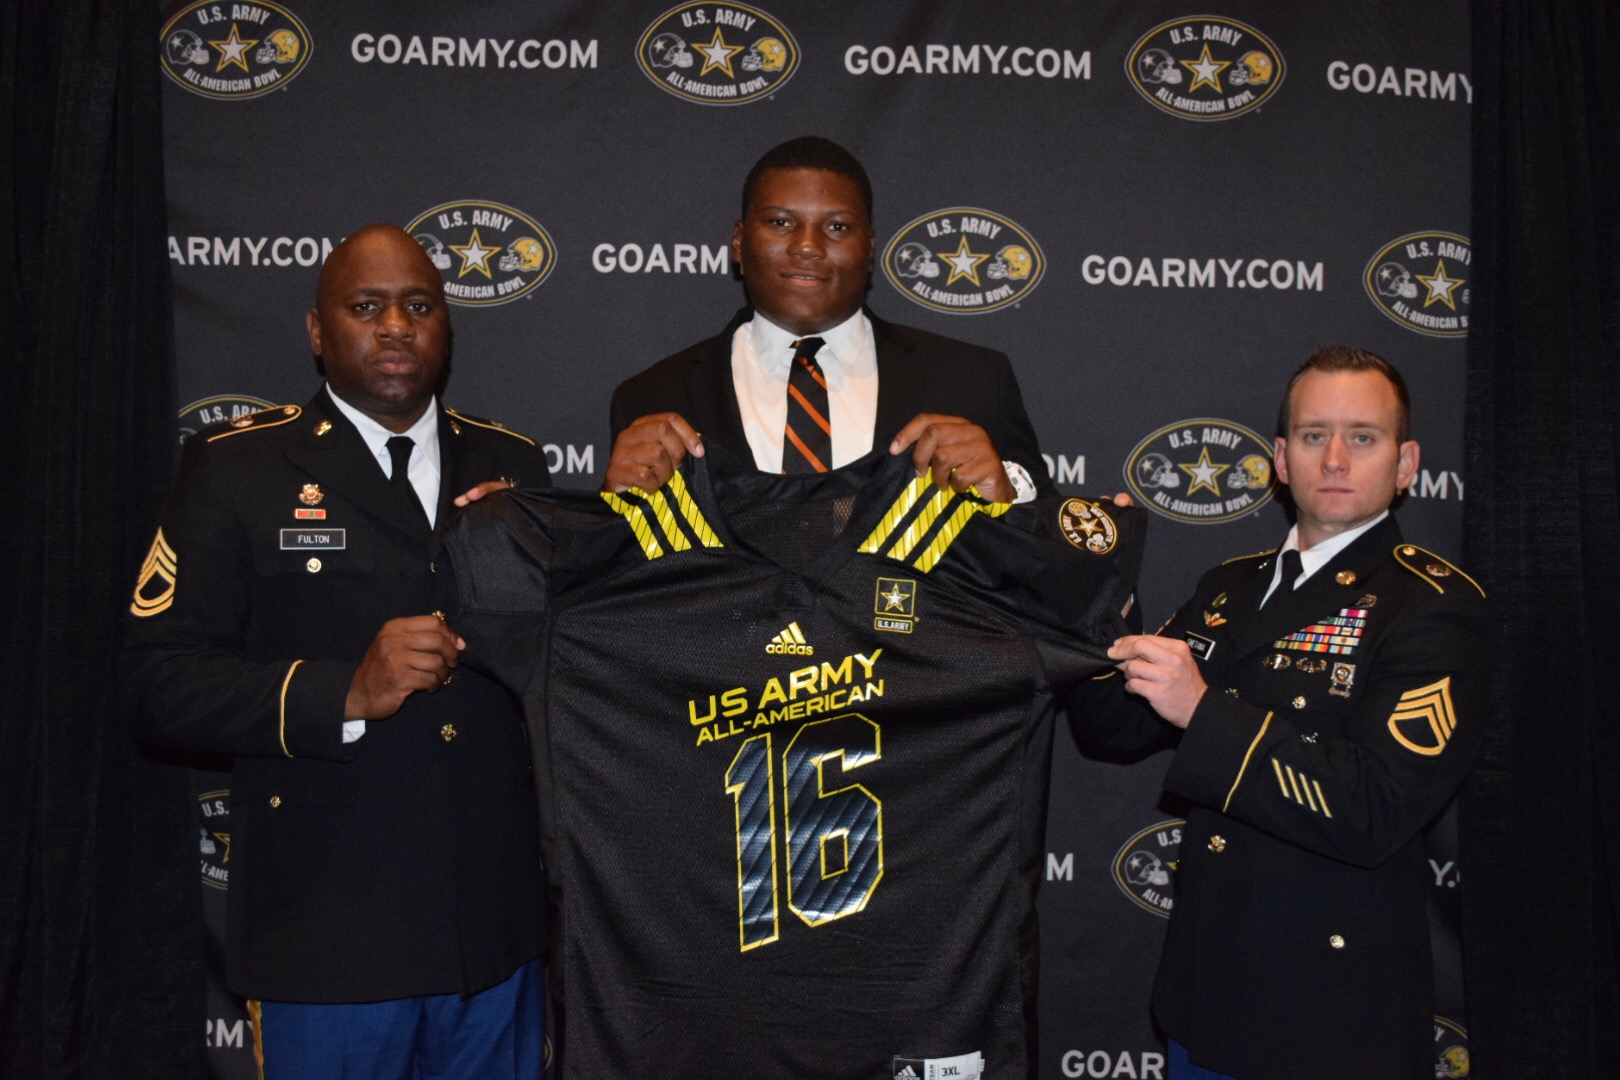 Derrick Brown receiving his U.S. Army All-American Bowl jersey alongside (from left to right) are Sergeant First Class John Fulton and Staff Sergeant Brian Snetana. (Photo: Army All-American Bowl)